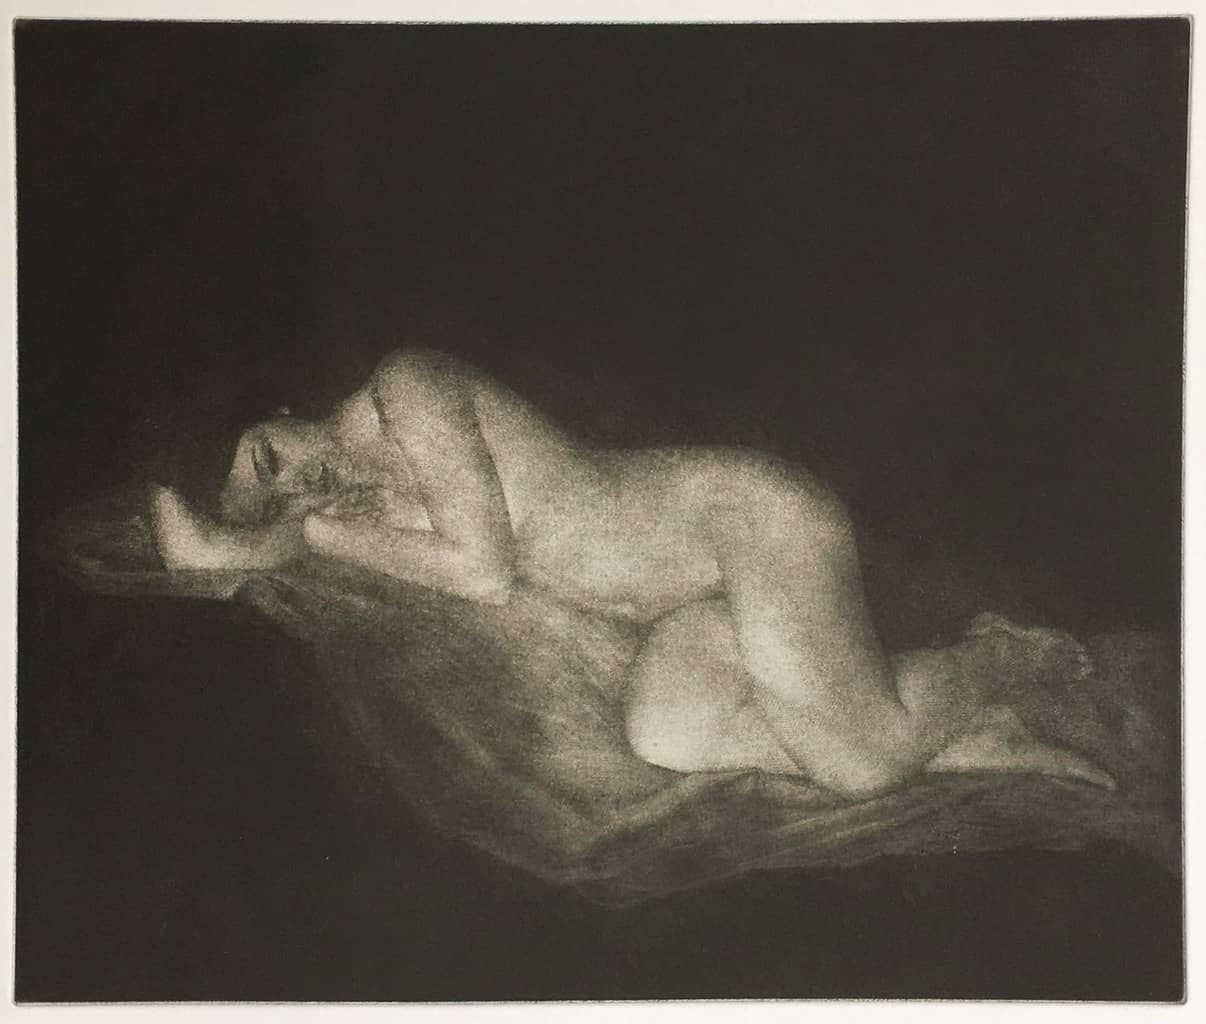 """""""Claire"""" - picture of a female nude model reclining, against a black background. Original print mezzotint by painter-printmaker Marina Kim"""